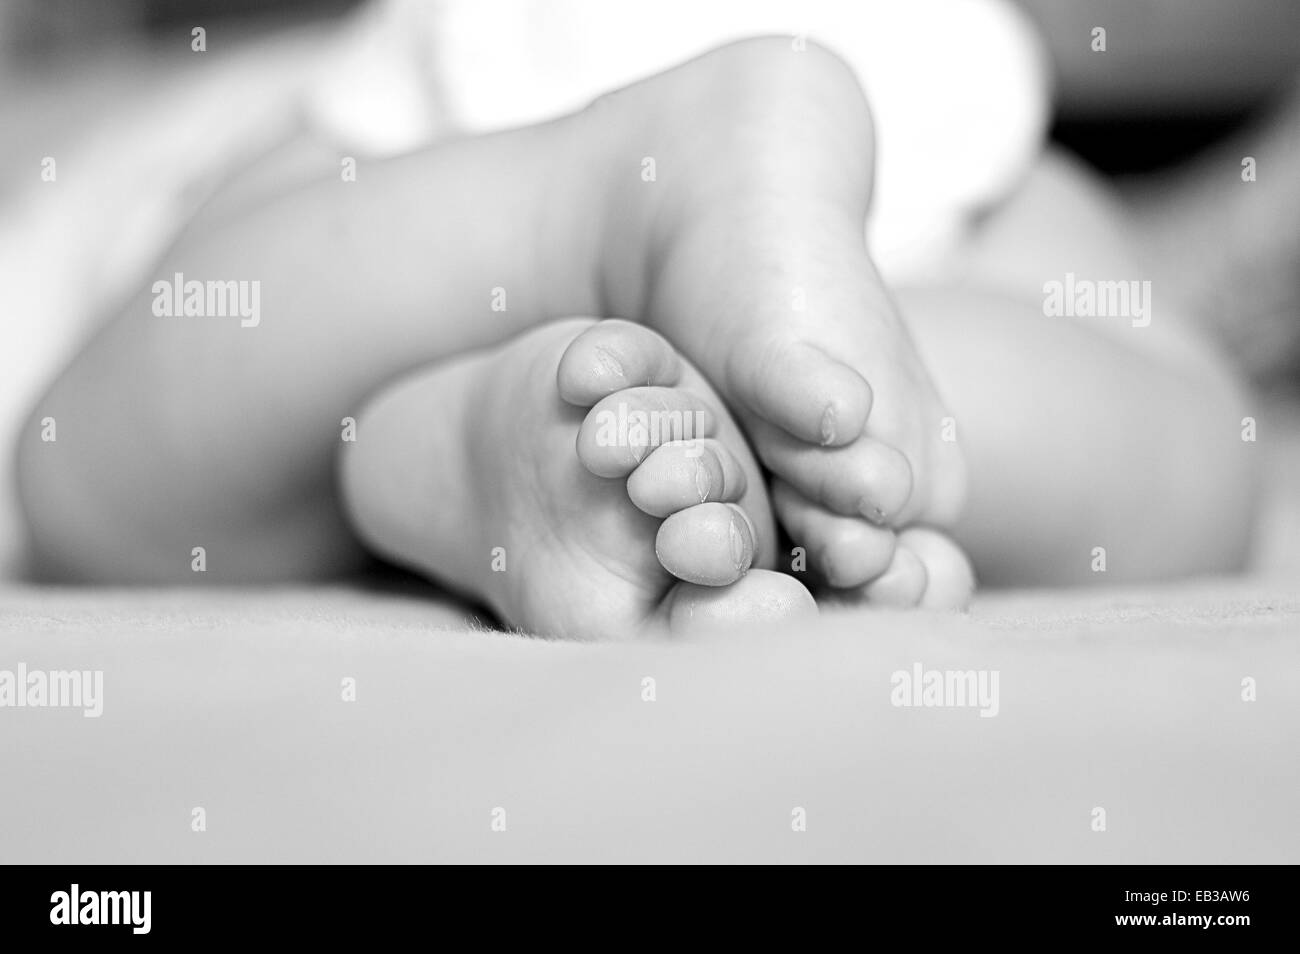 Close-up of baby (2-5 months) feet - Stock Image